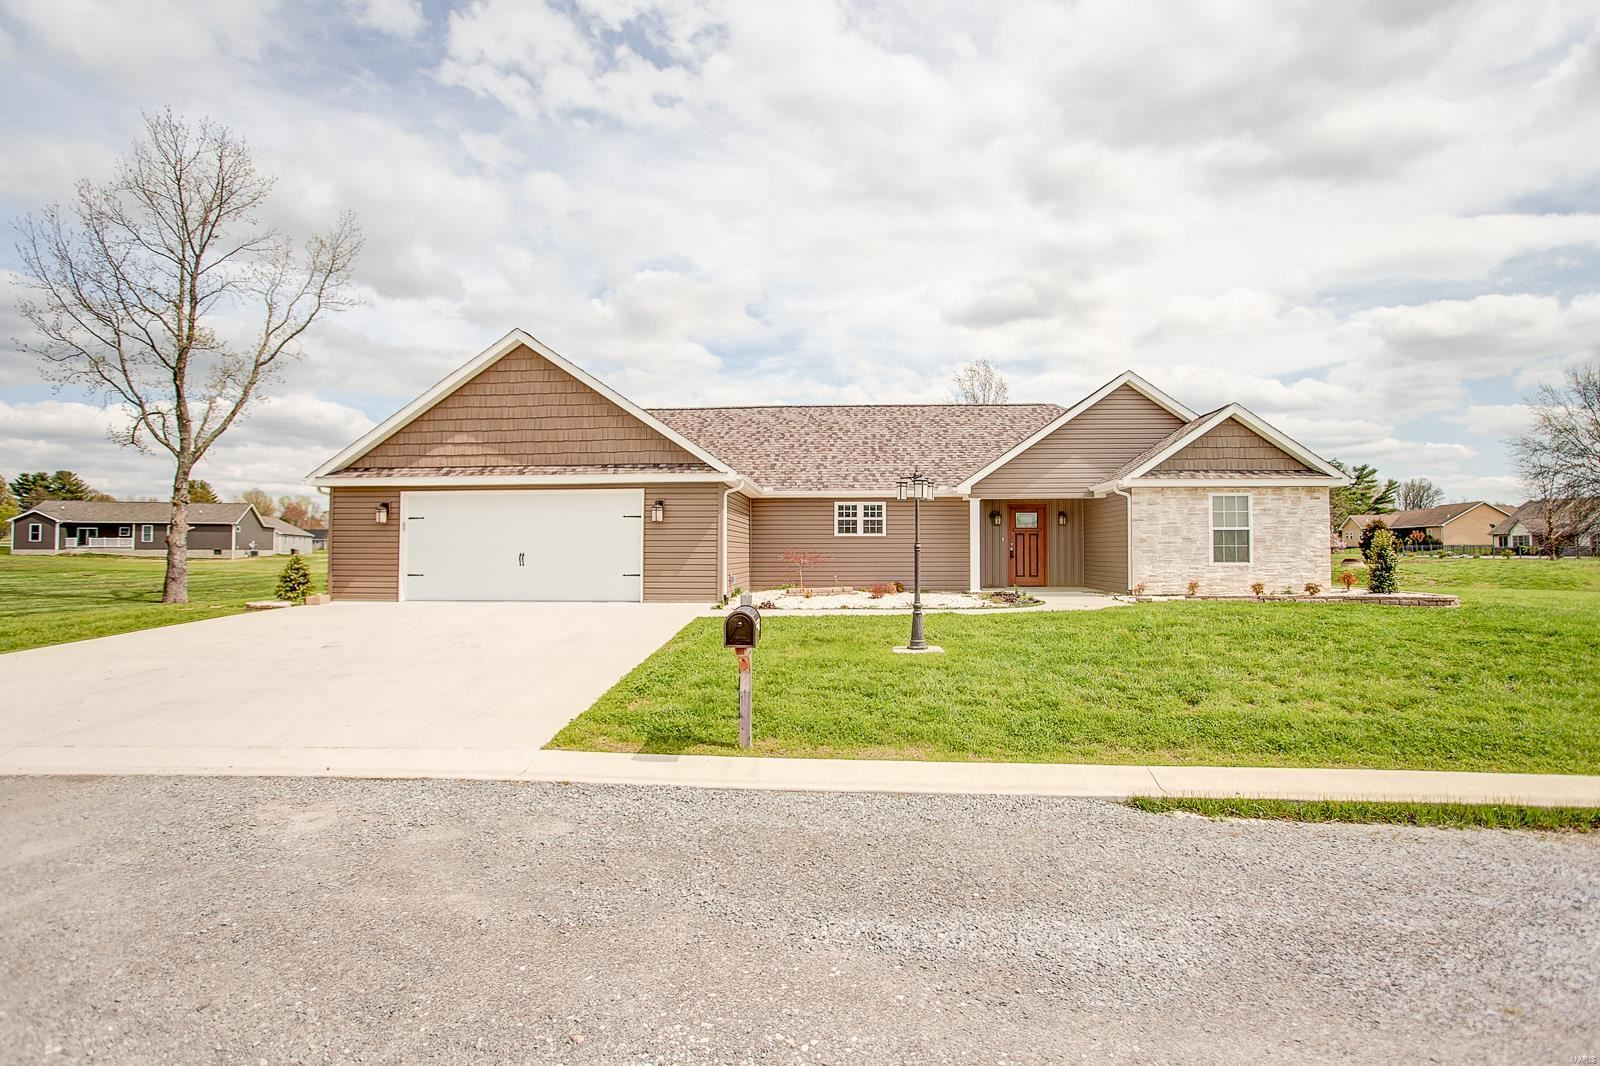 1805 Roye Lane, Marion, IL 62959 - MLS#: 20022795